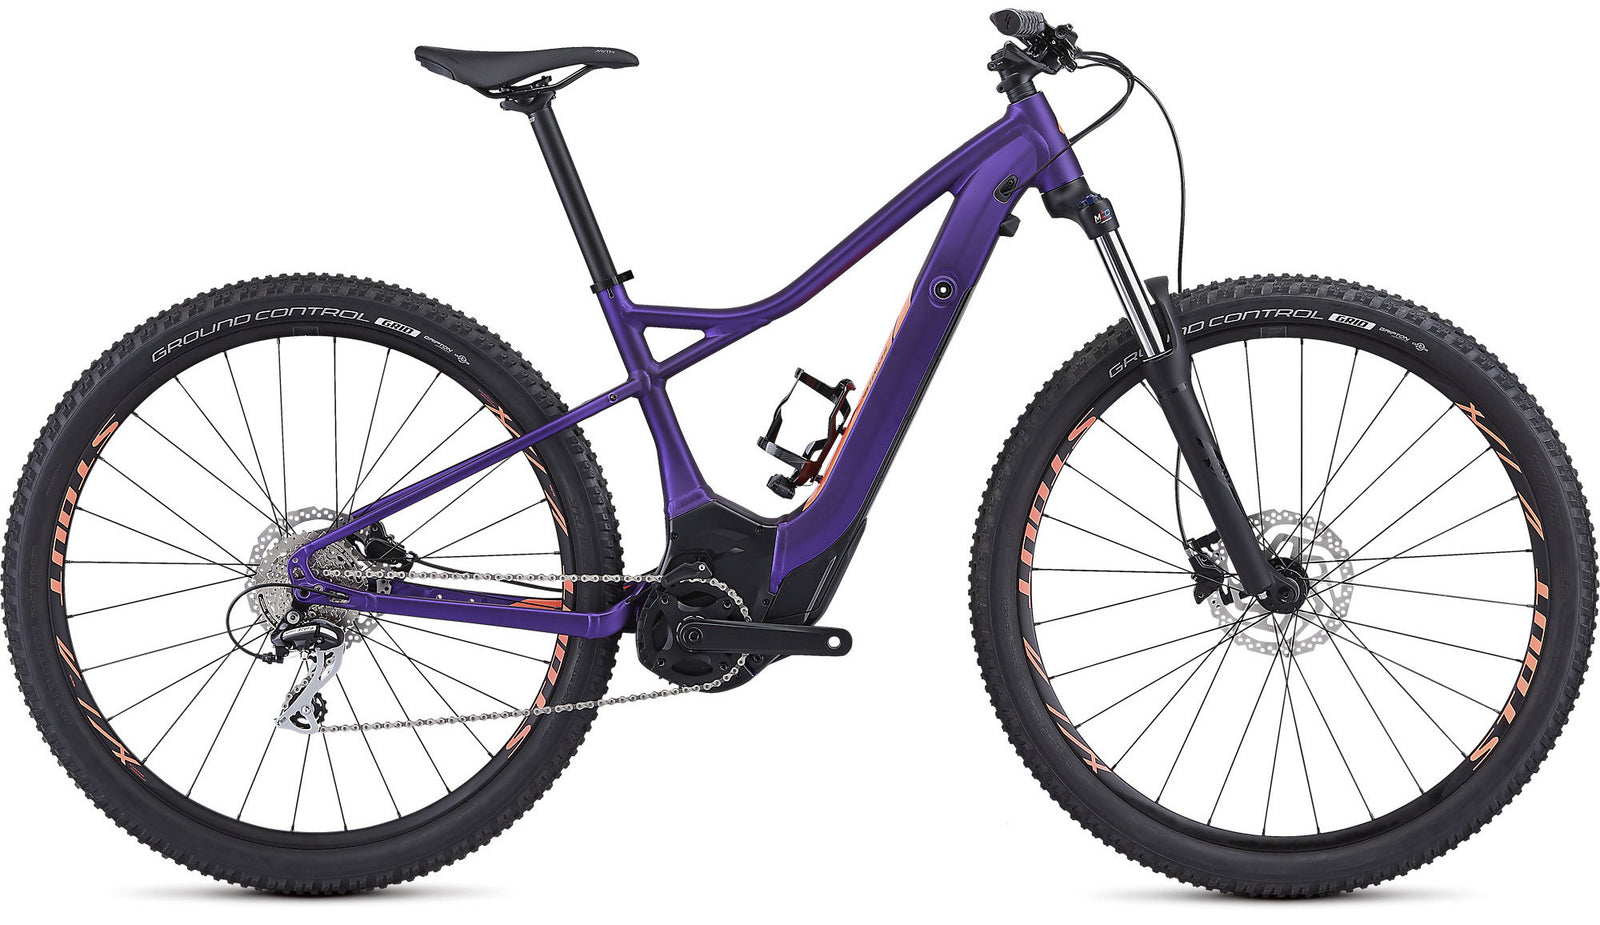 2019 Turbo Levo Womens Hardtail 29